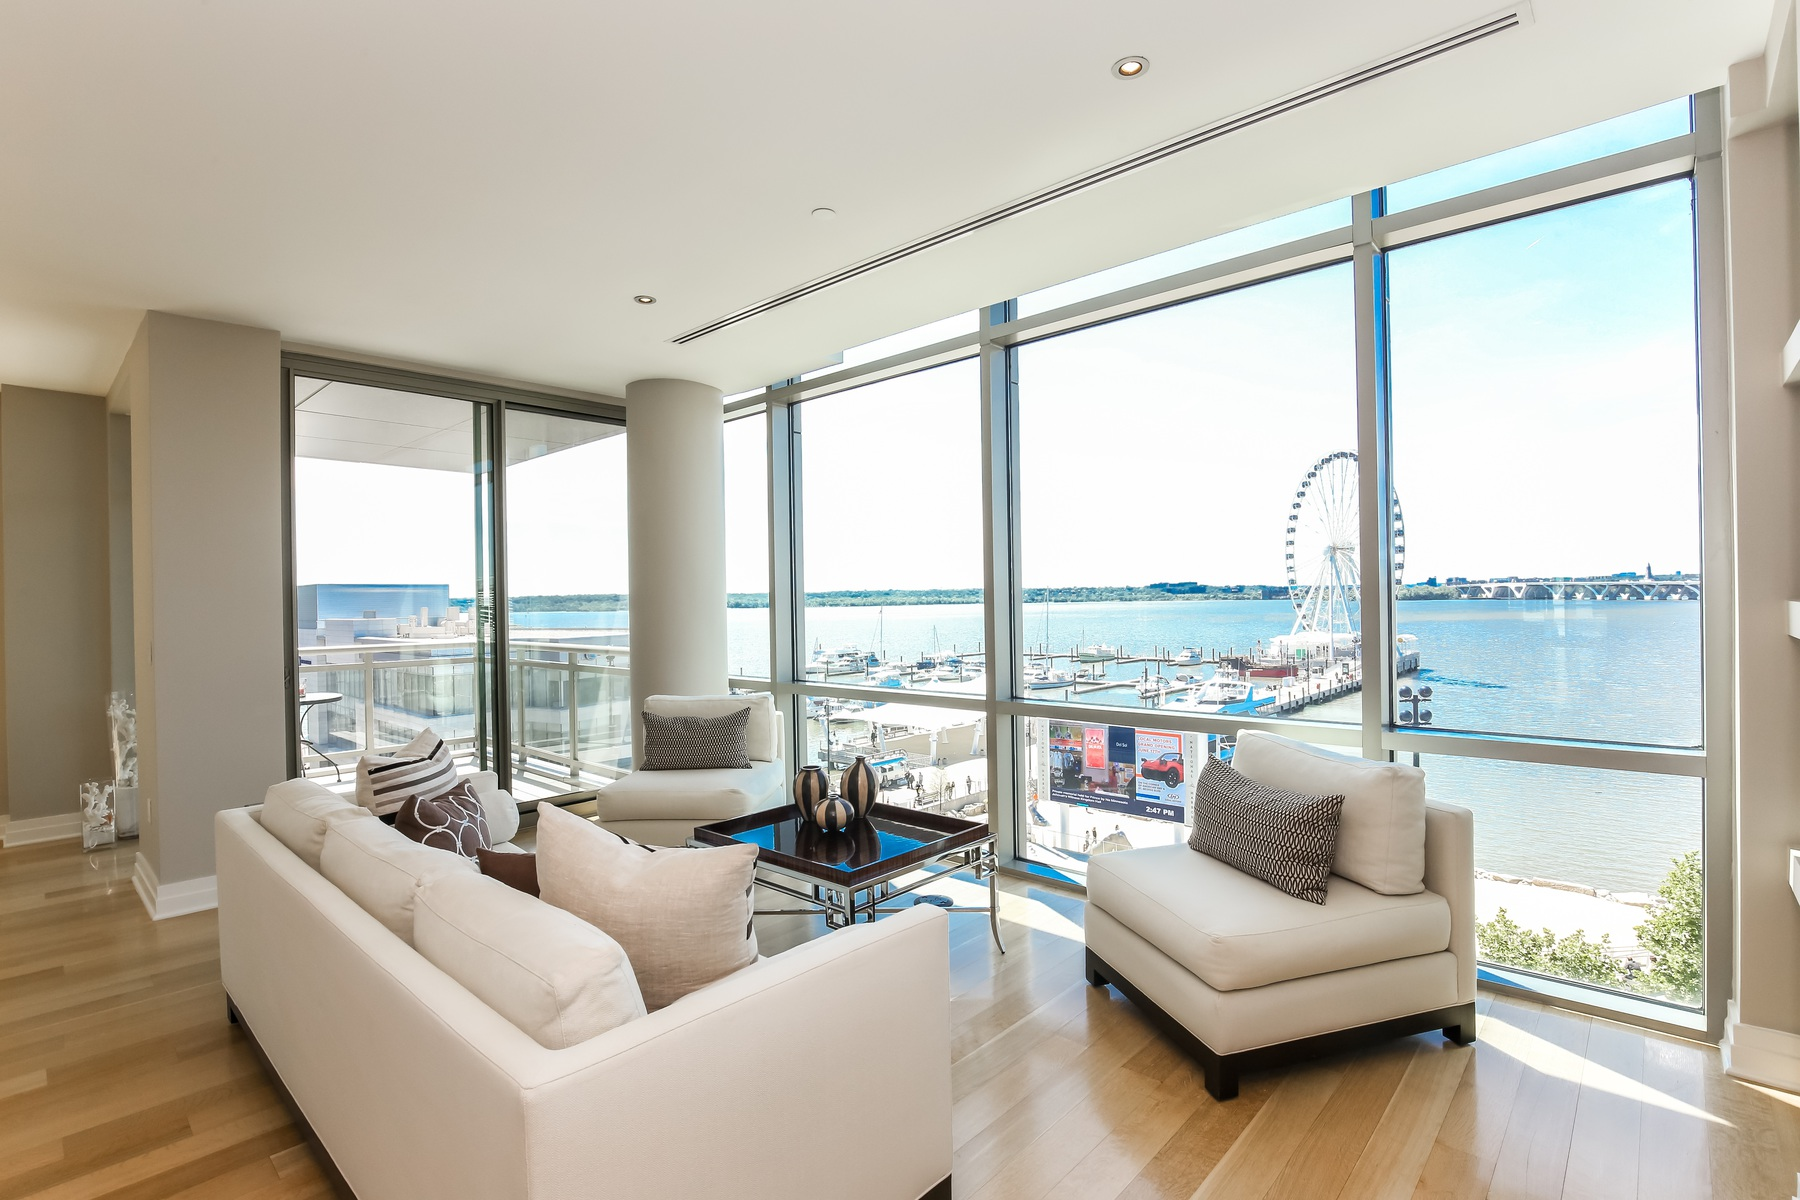 sales property at 147 Waterfront 301, National Harbor